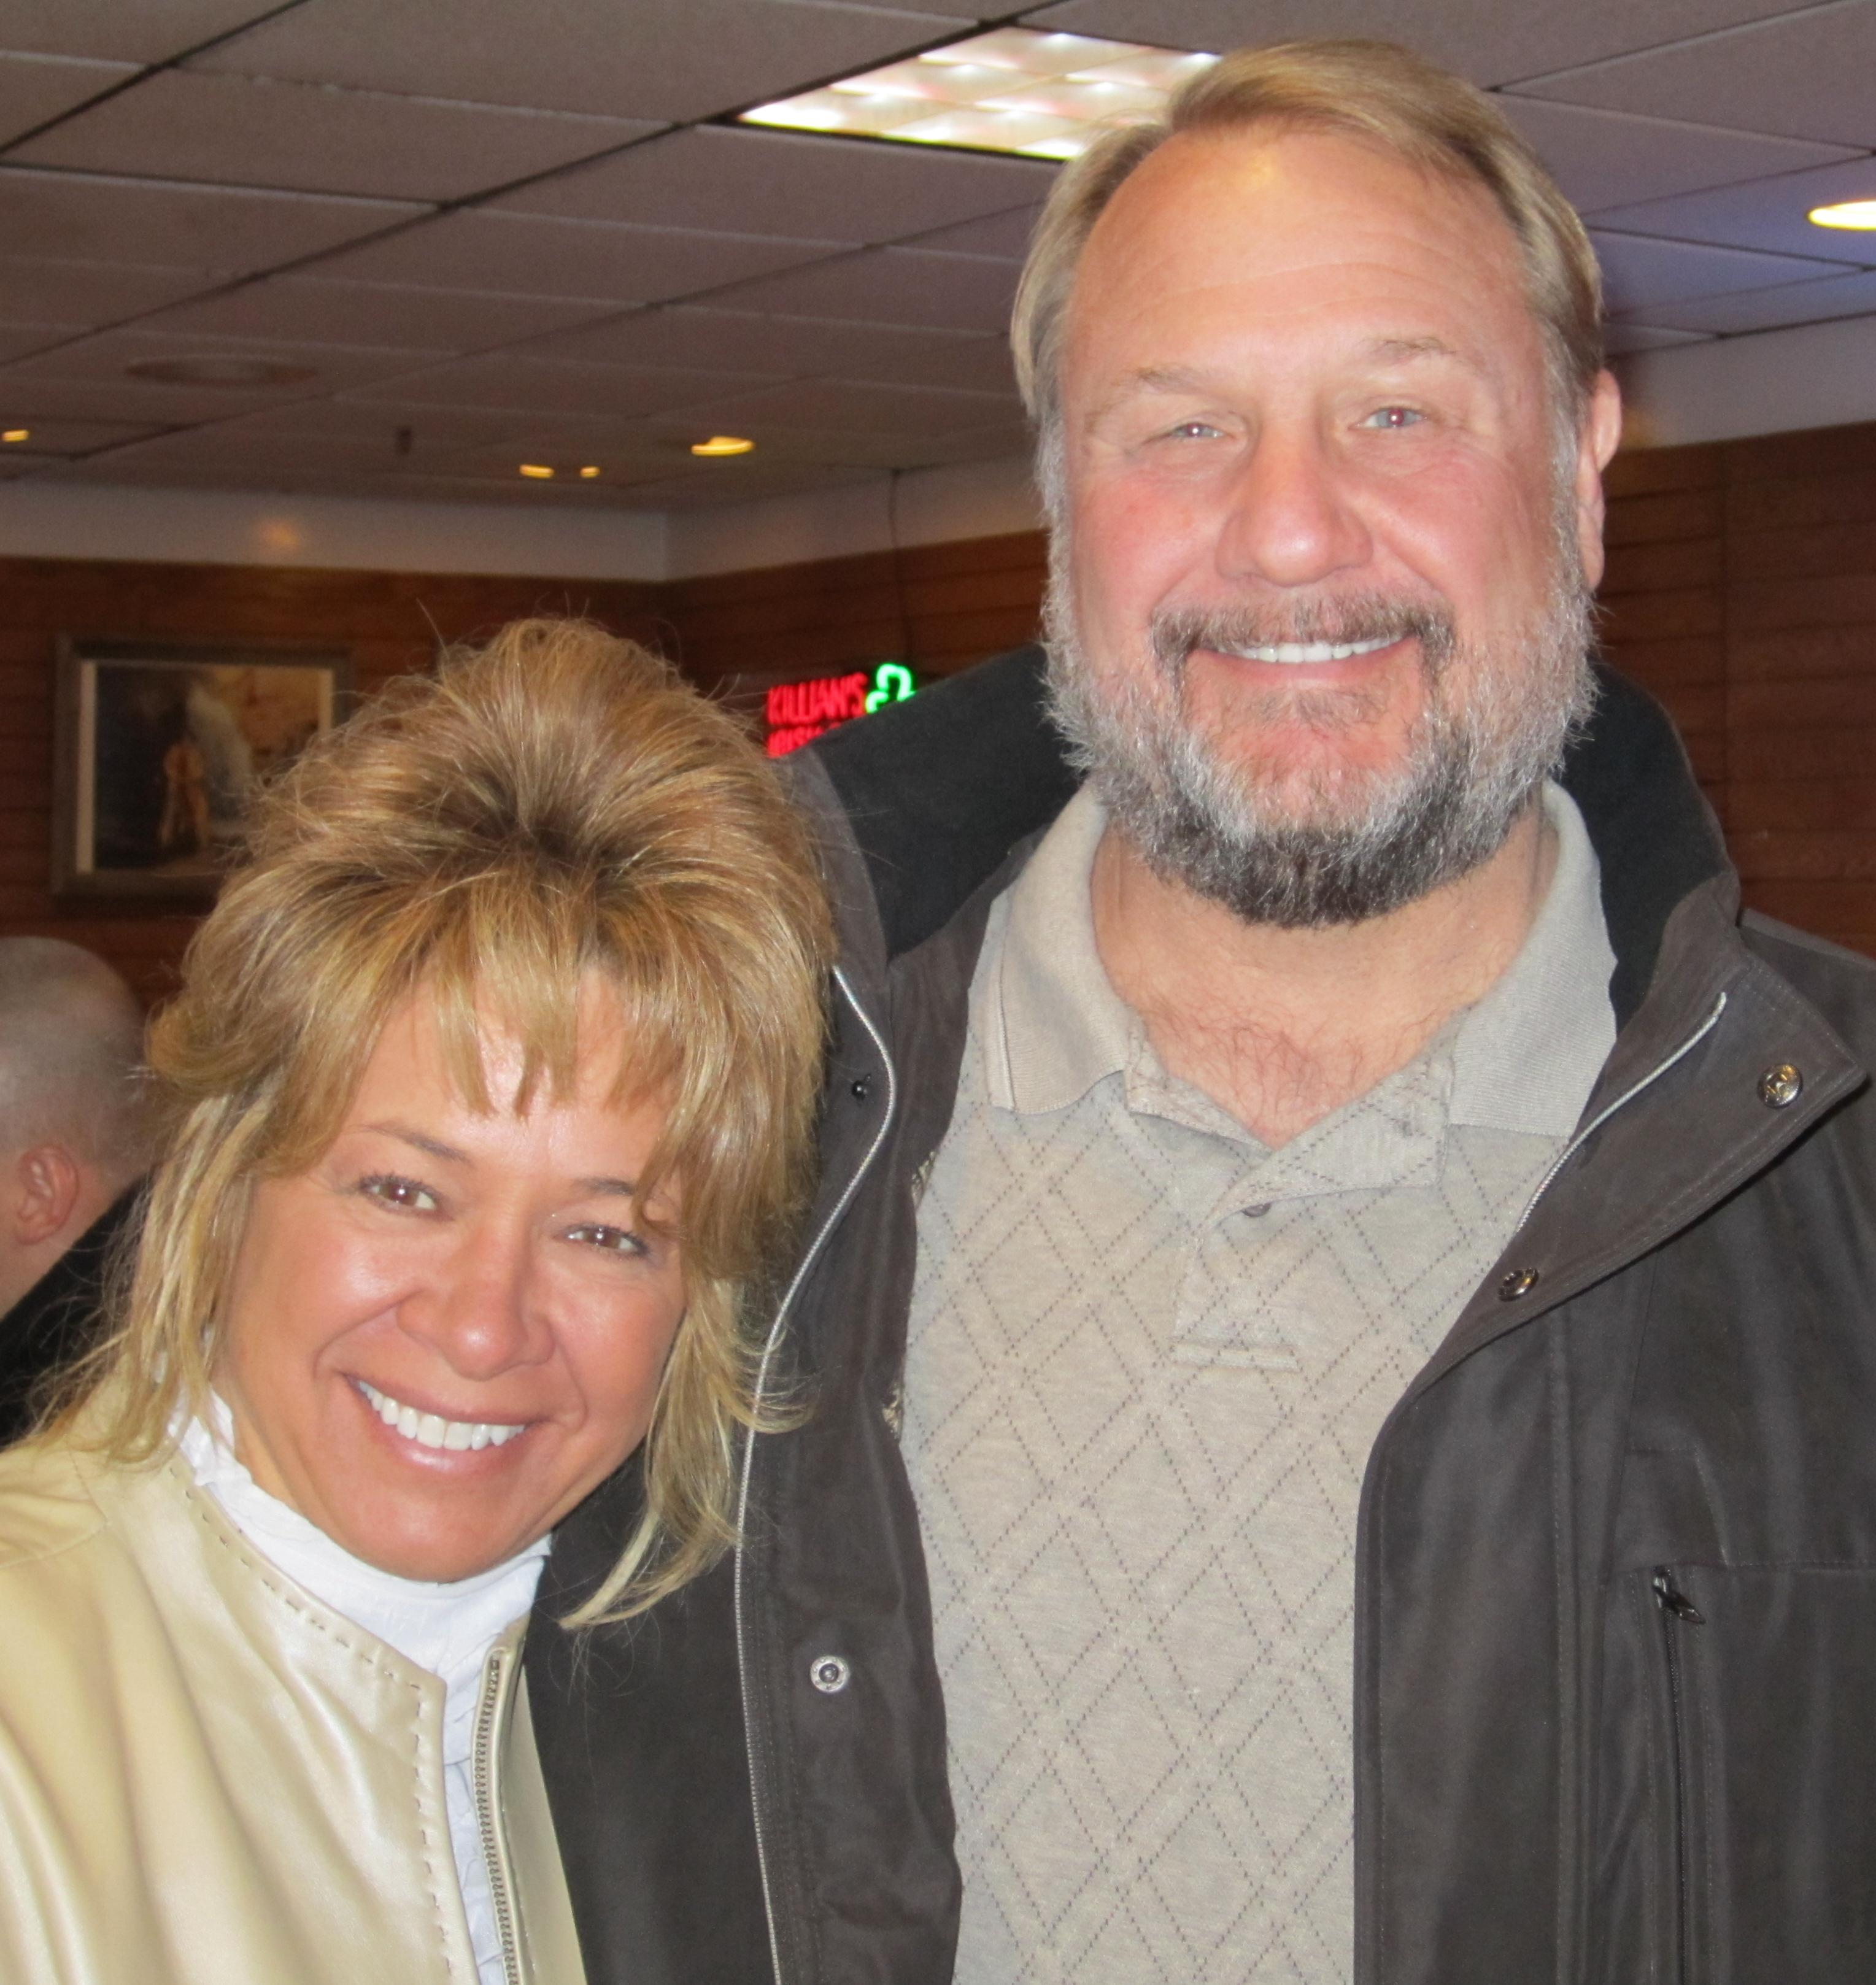 Kennel Owners Robert and Jayne Holmes